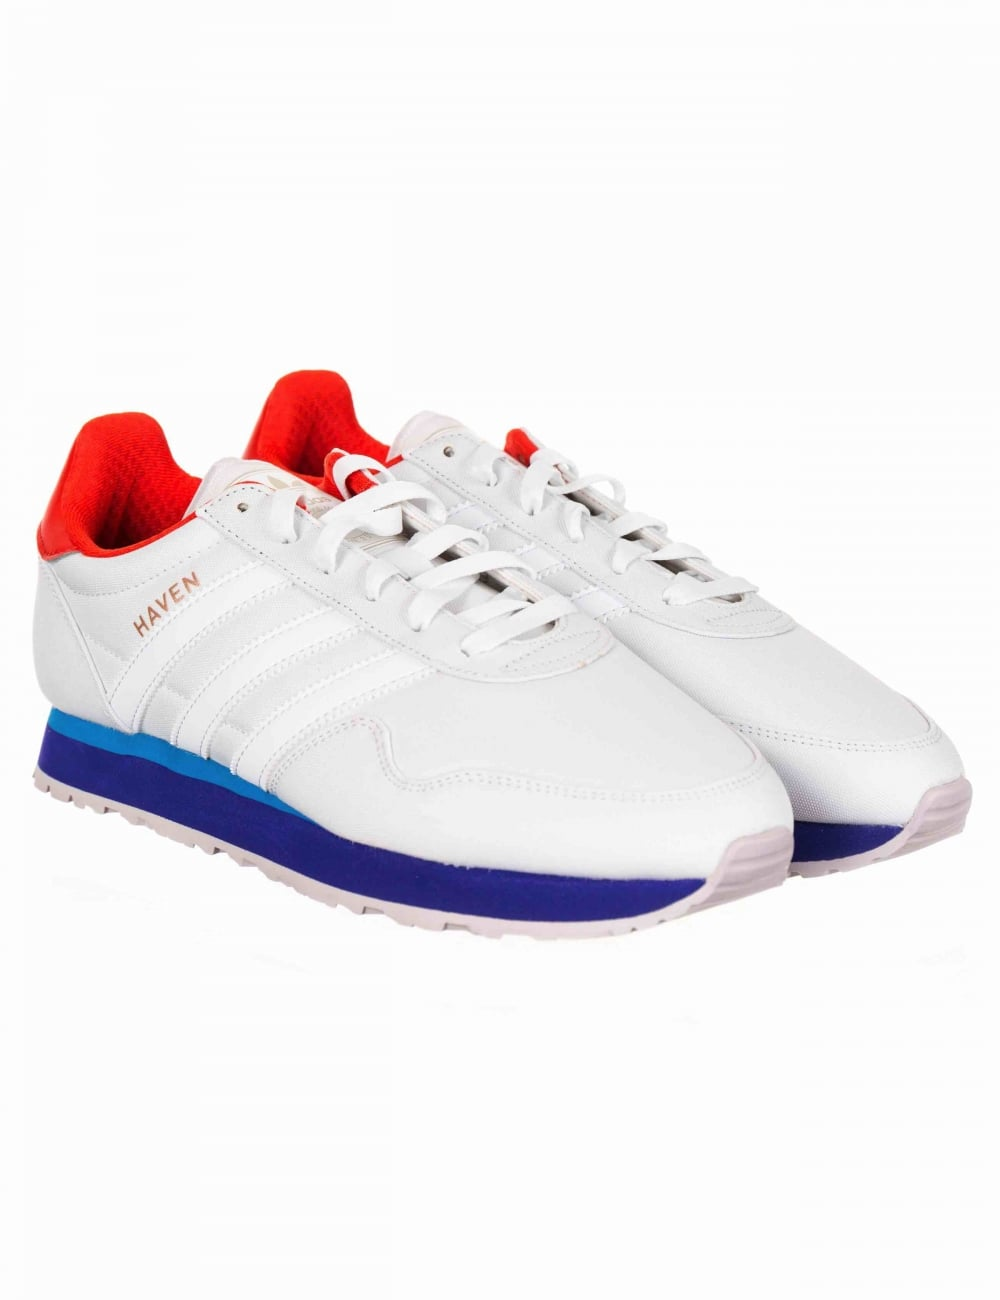 low priced ce86a 22a1e Adidas Originals Haven Shoes - Footwear White Burnt Orange